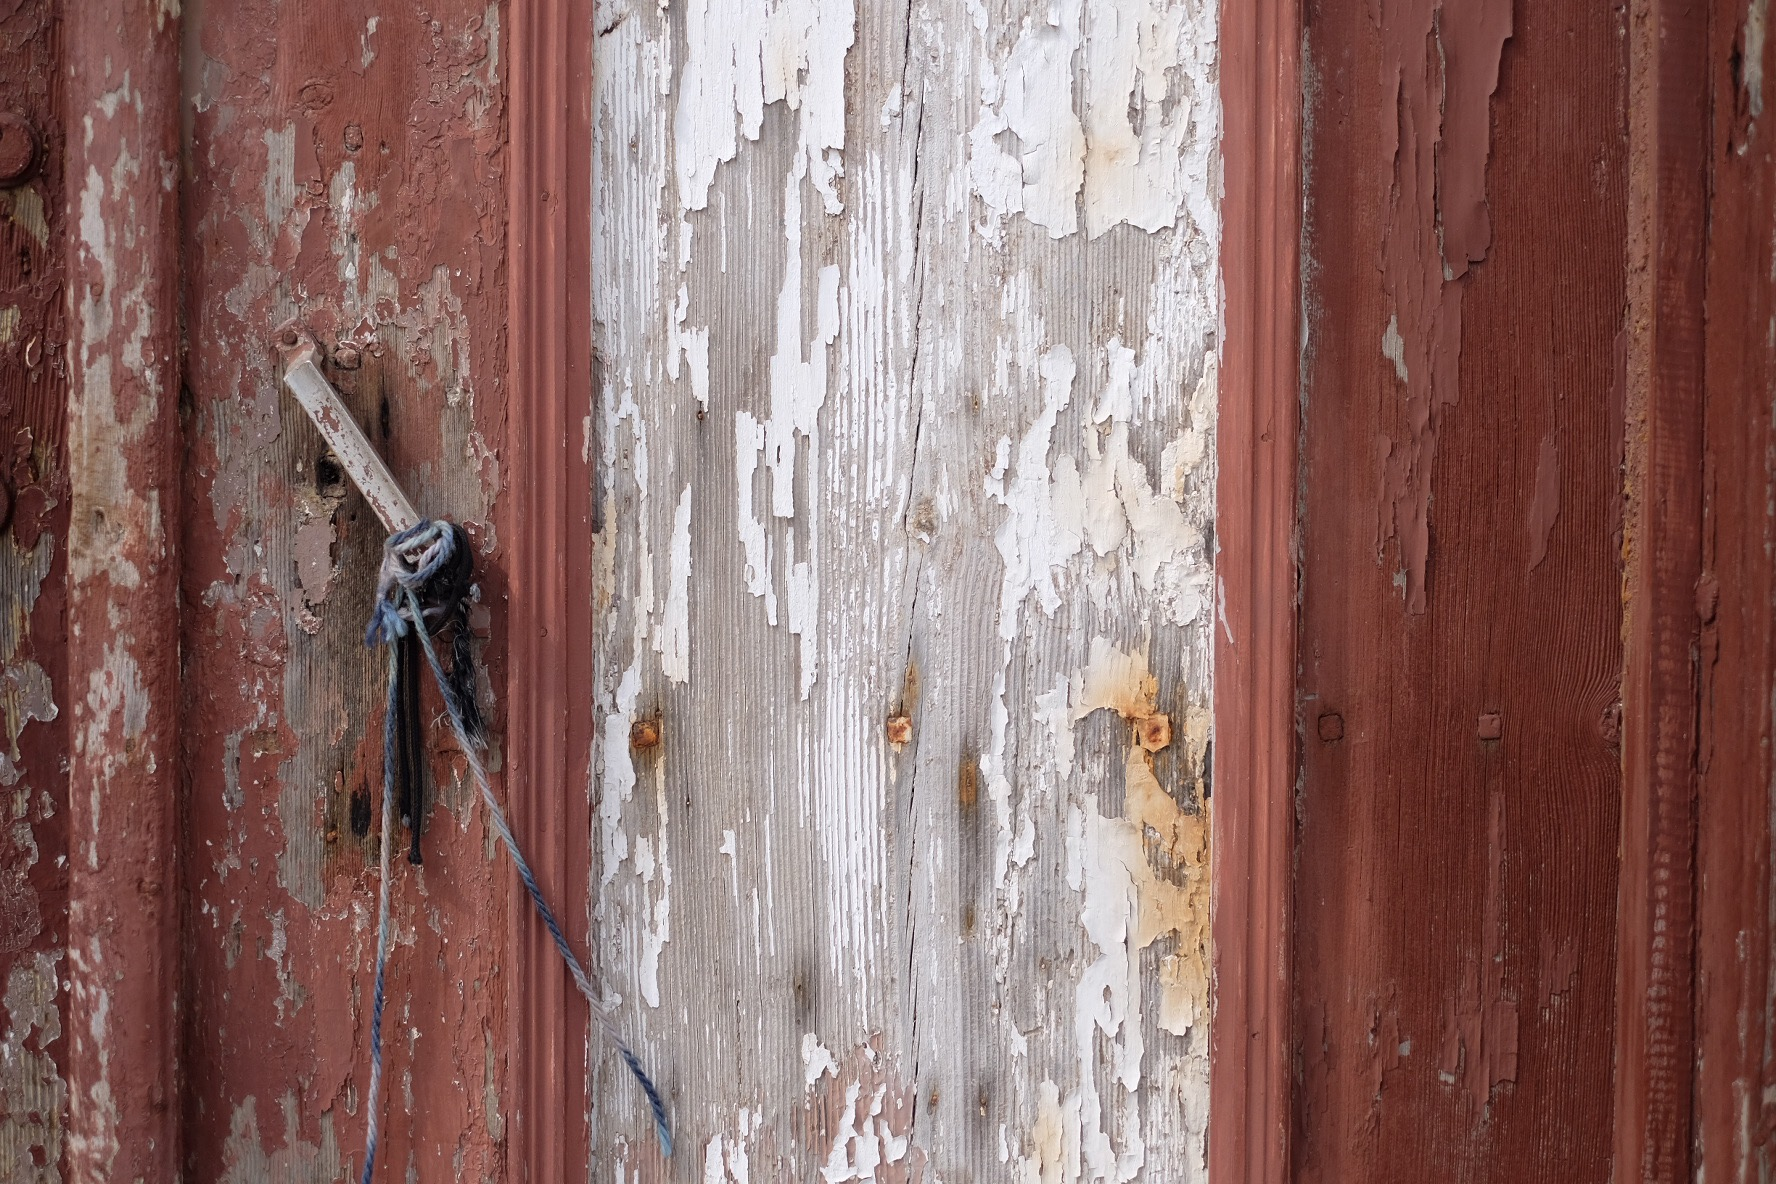 Painted wood door with the texture.